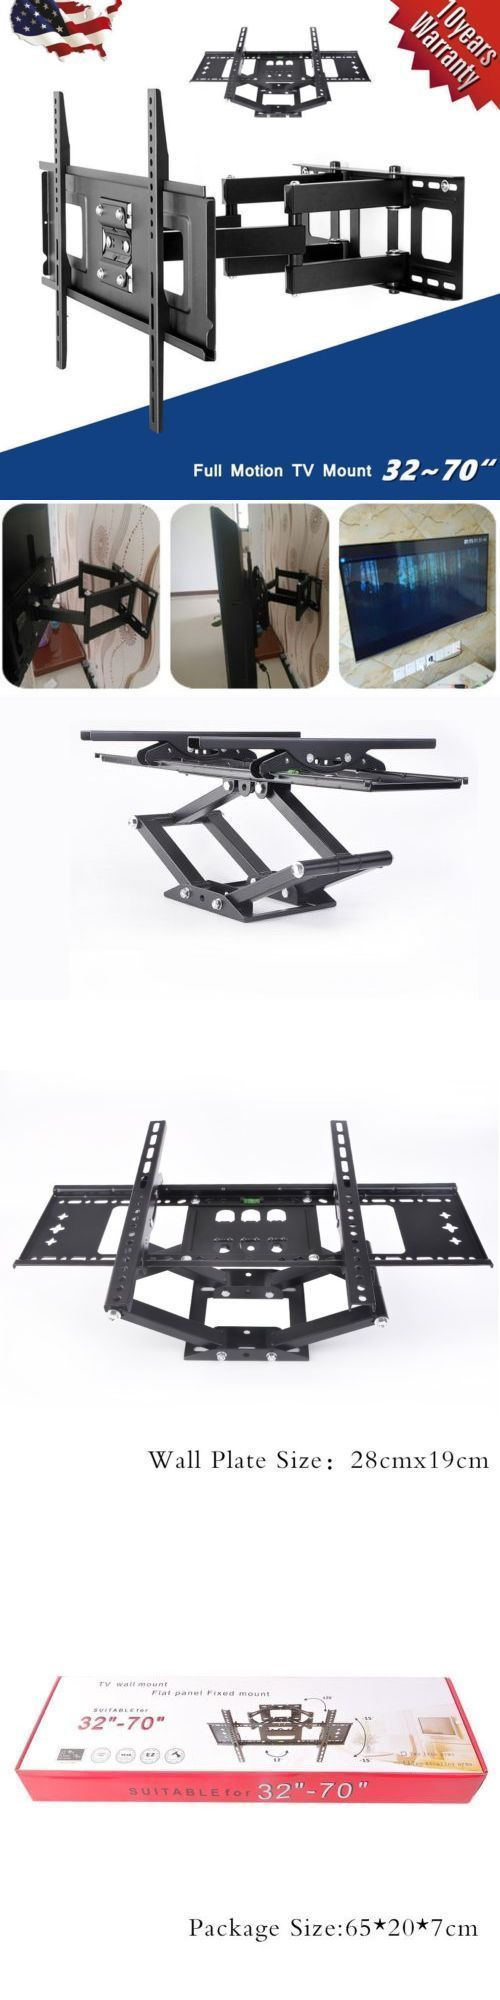 TV Mounts and Brackets: Articulating Swivel Led Lcd Tv Wall Mount Bracket 32 40 42 46 47 50 55 60 65 70~ BUY IT NOW ONLY: $30.85